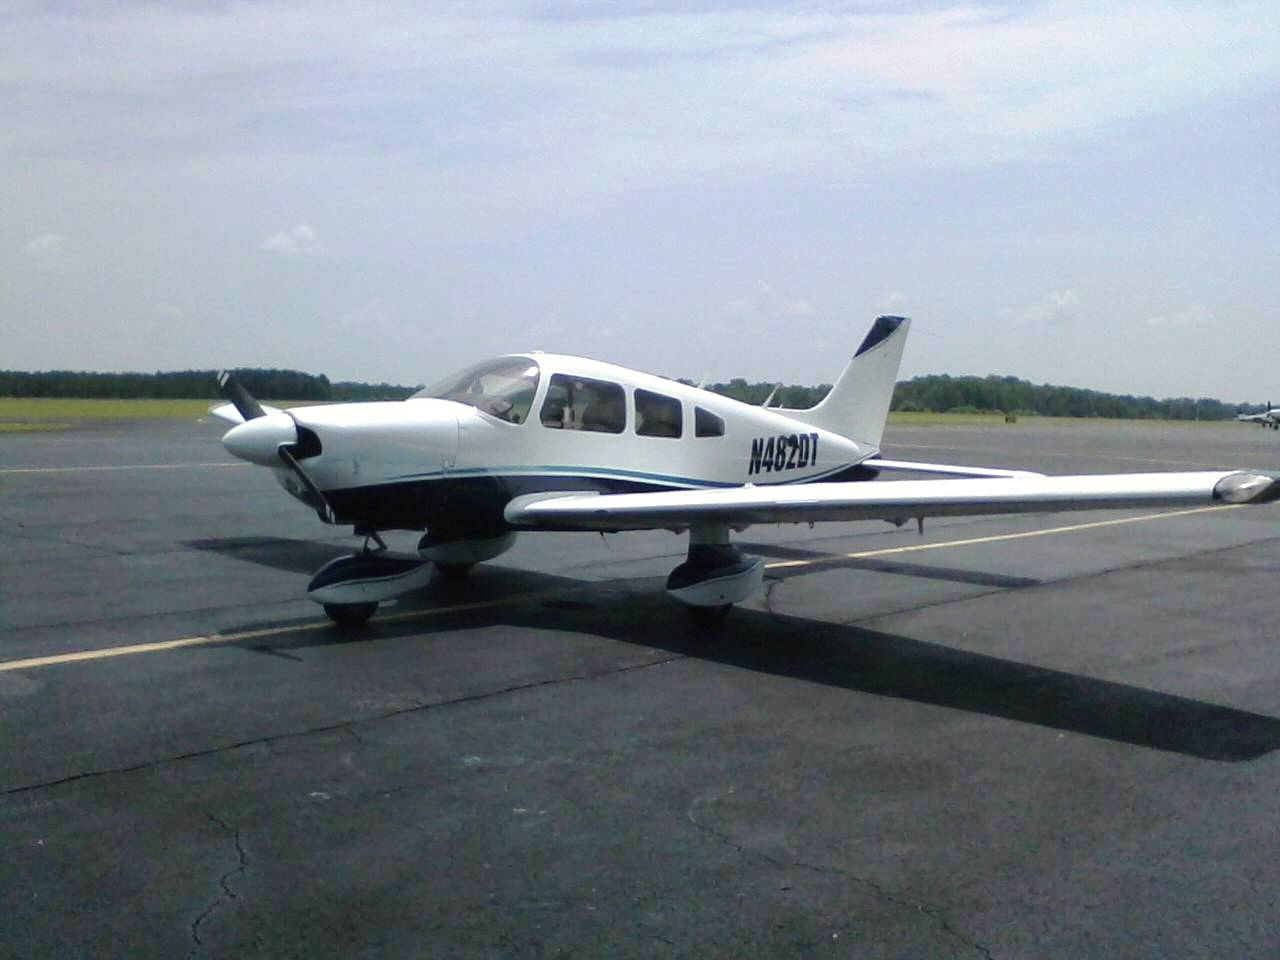 N482DT for Flight Training or Aircraft Rental at Statesboro Bulloch County Airport